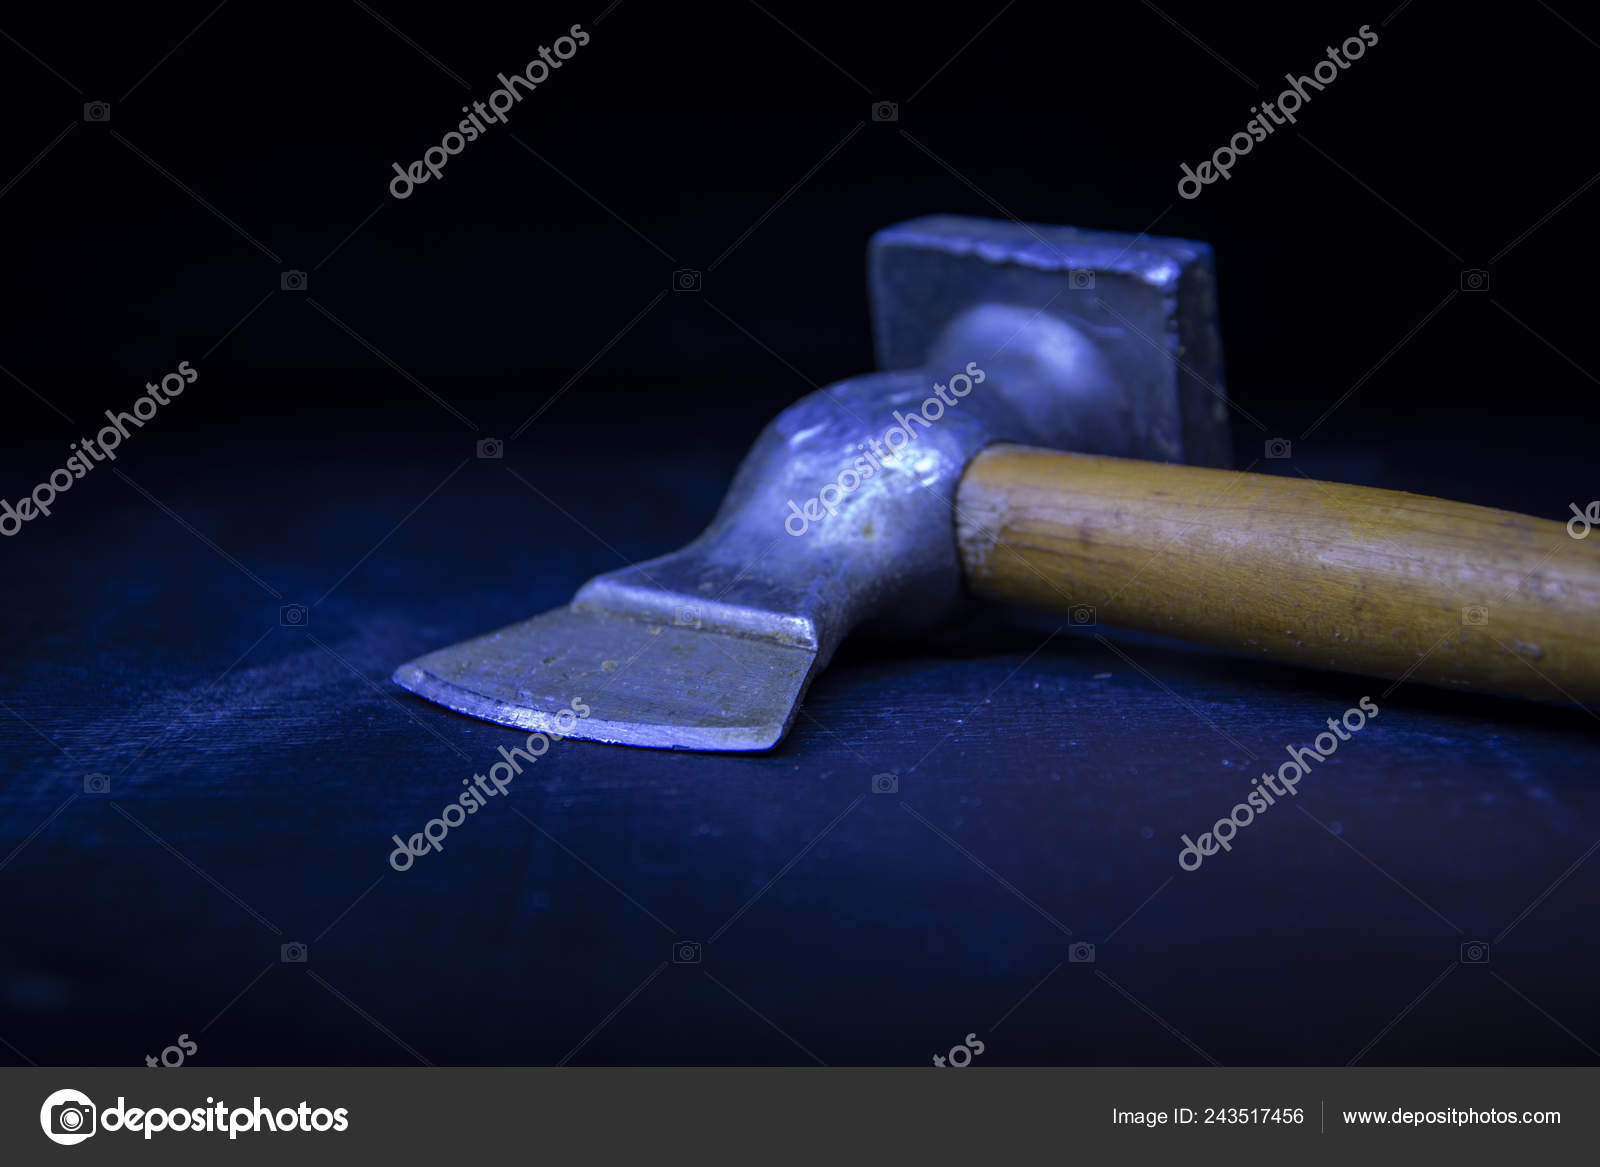 Axe Hammer Cooking Meat Sharp Metal Wooden Handle Tool Kitchen Stock Photo C Romafa 243517456